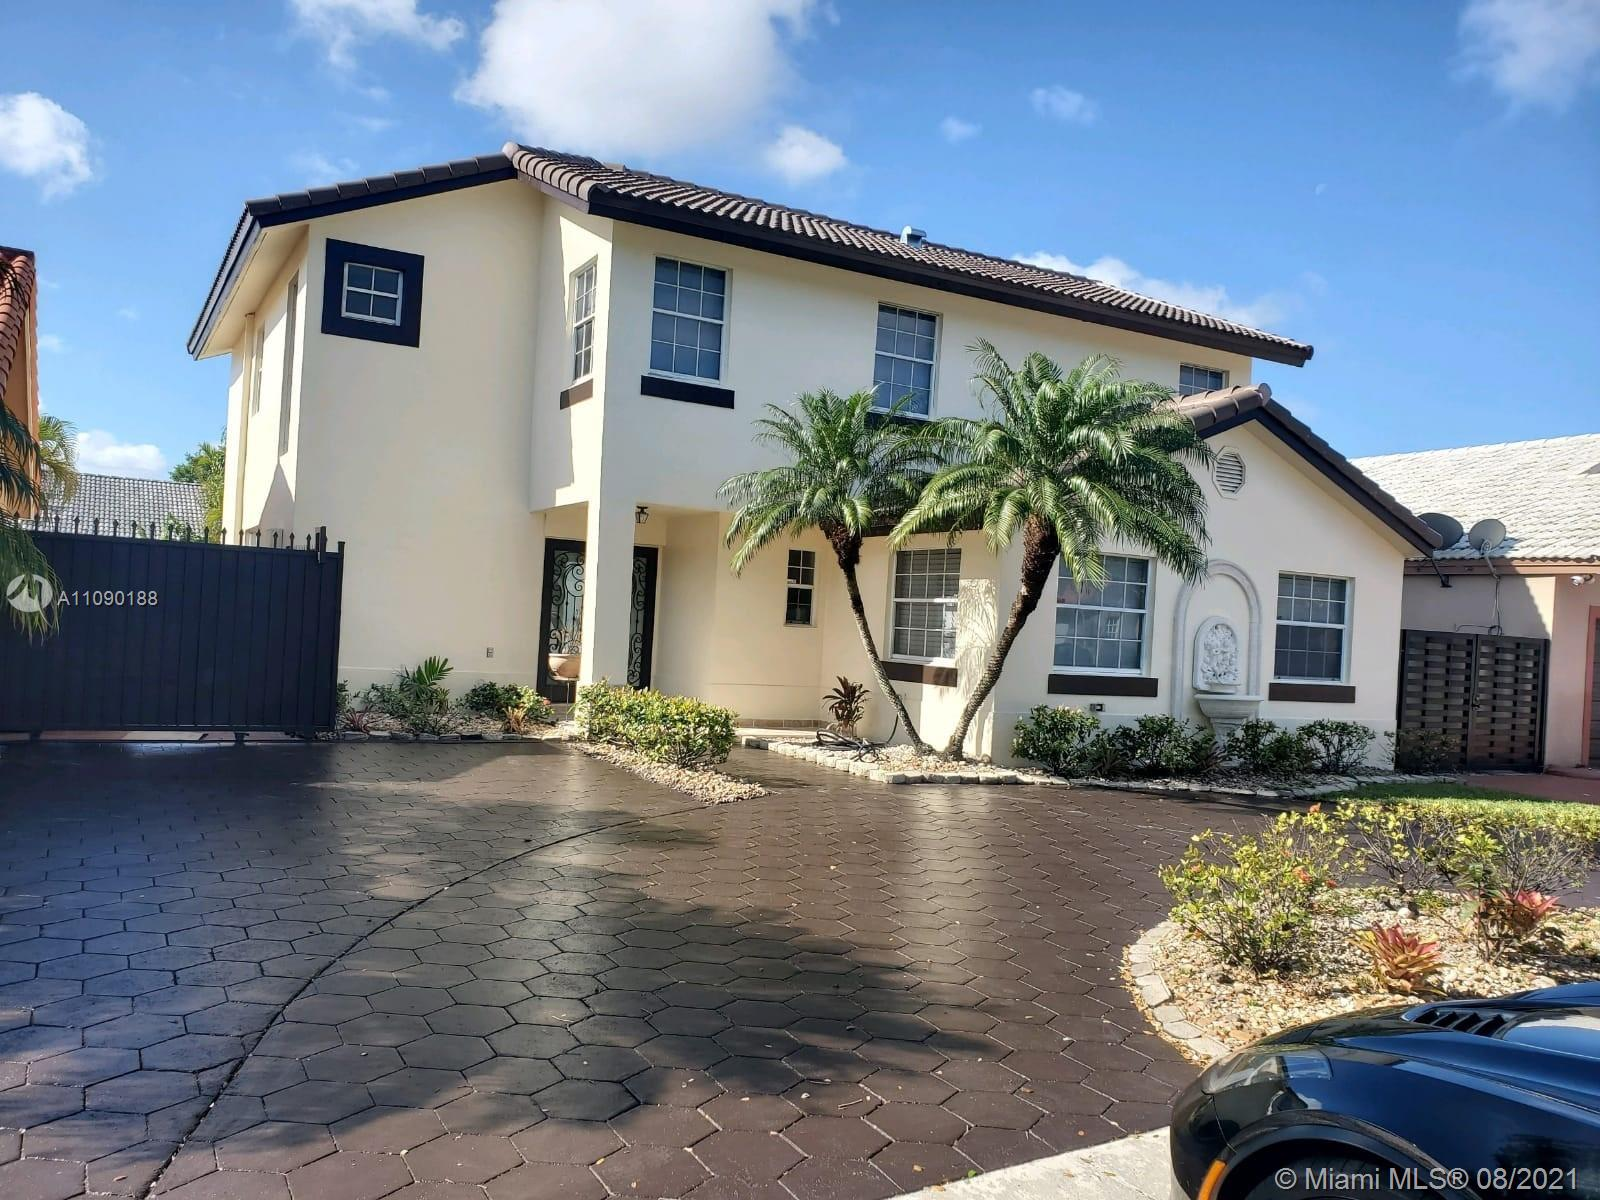 Single Family Home,For Sale,13394 NW 8th St, Miami, Florida 33182,Brickell,realty,broker,condos near me